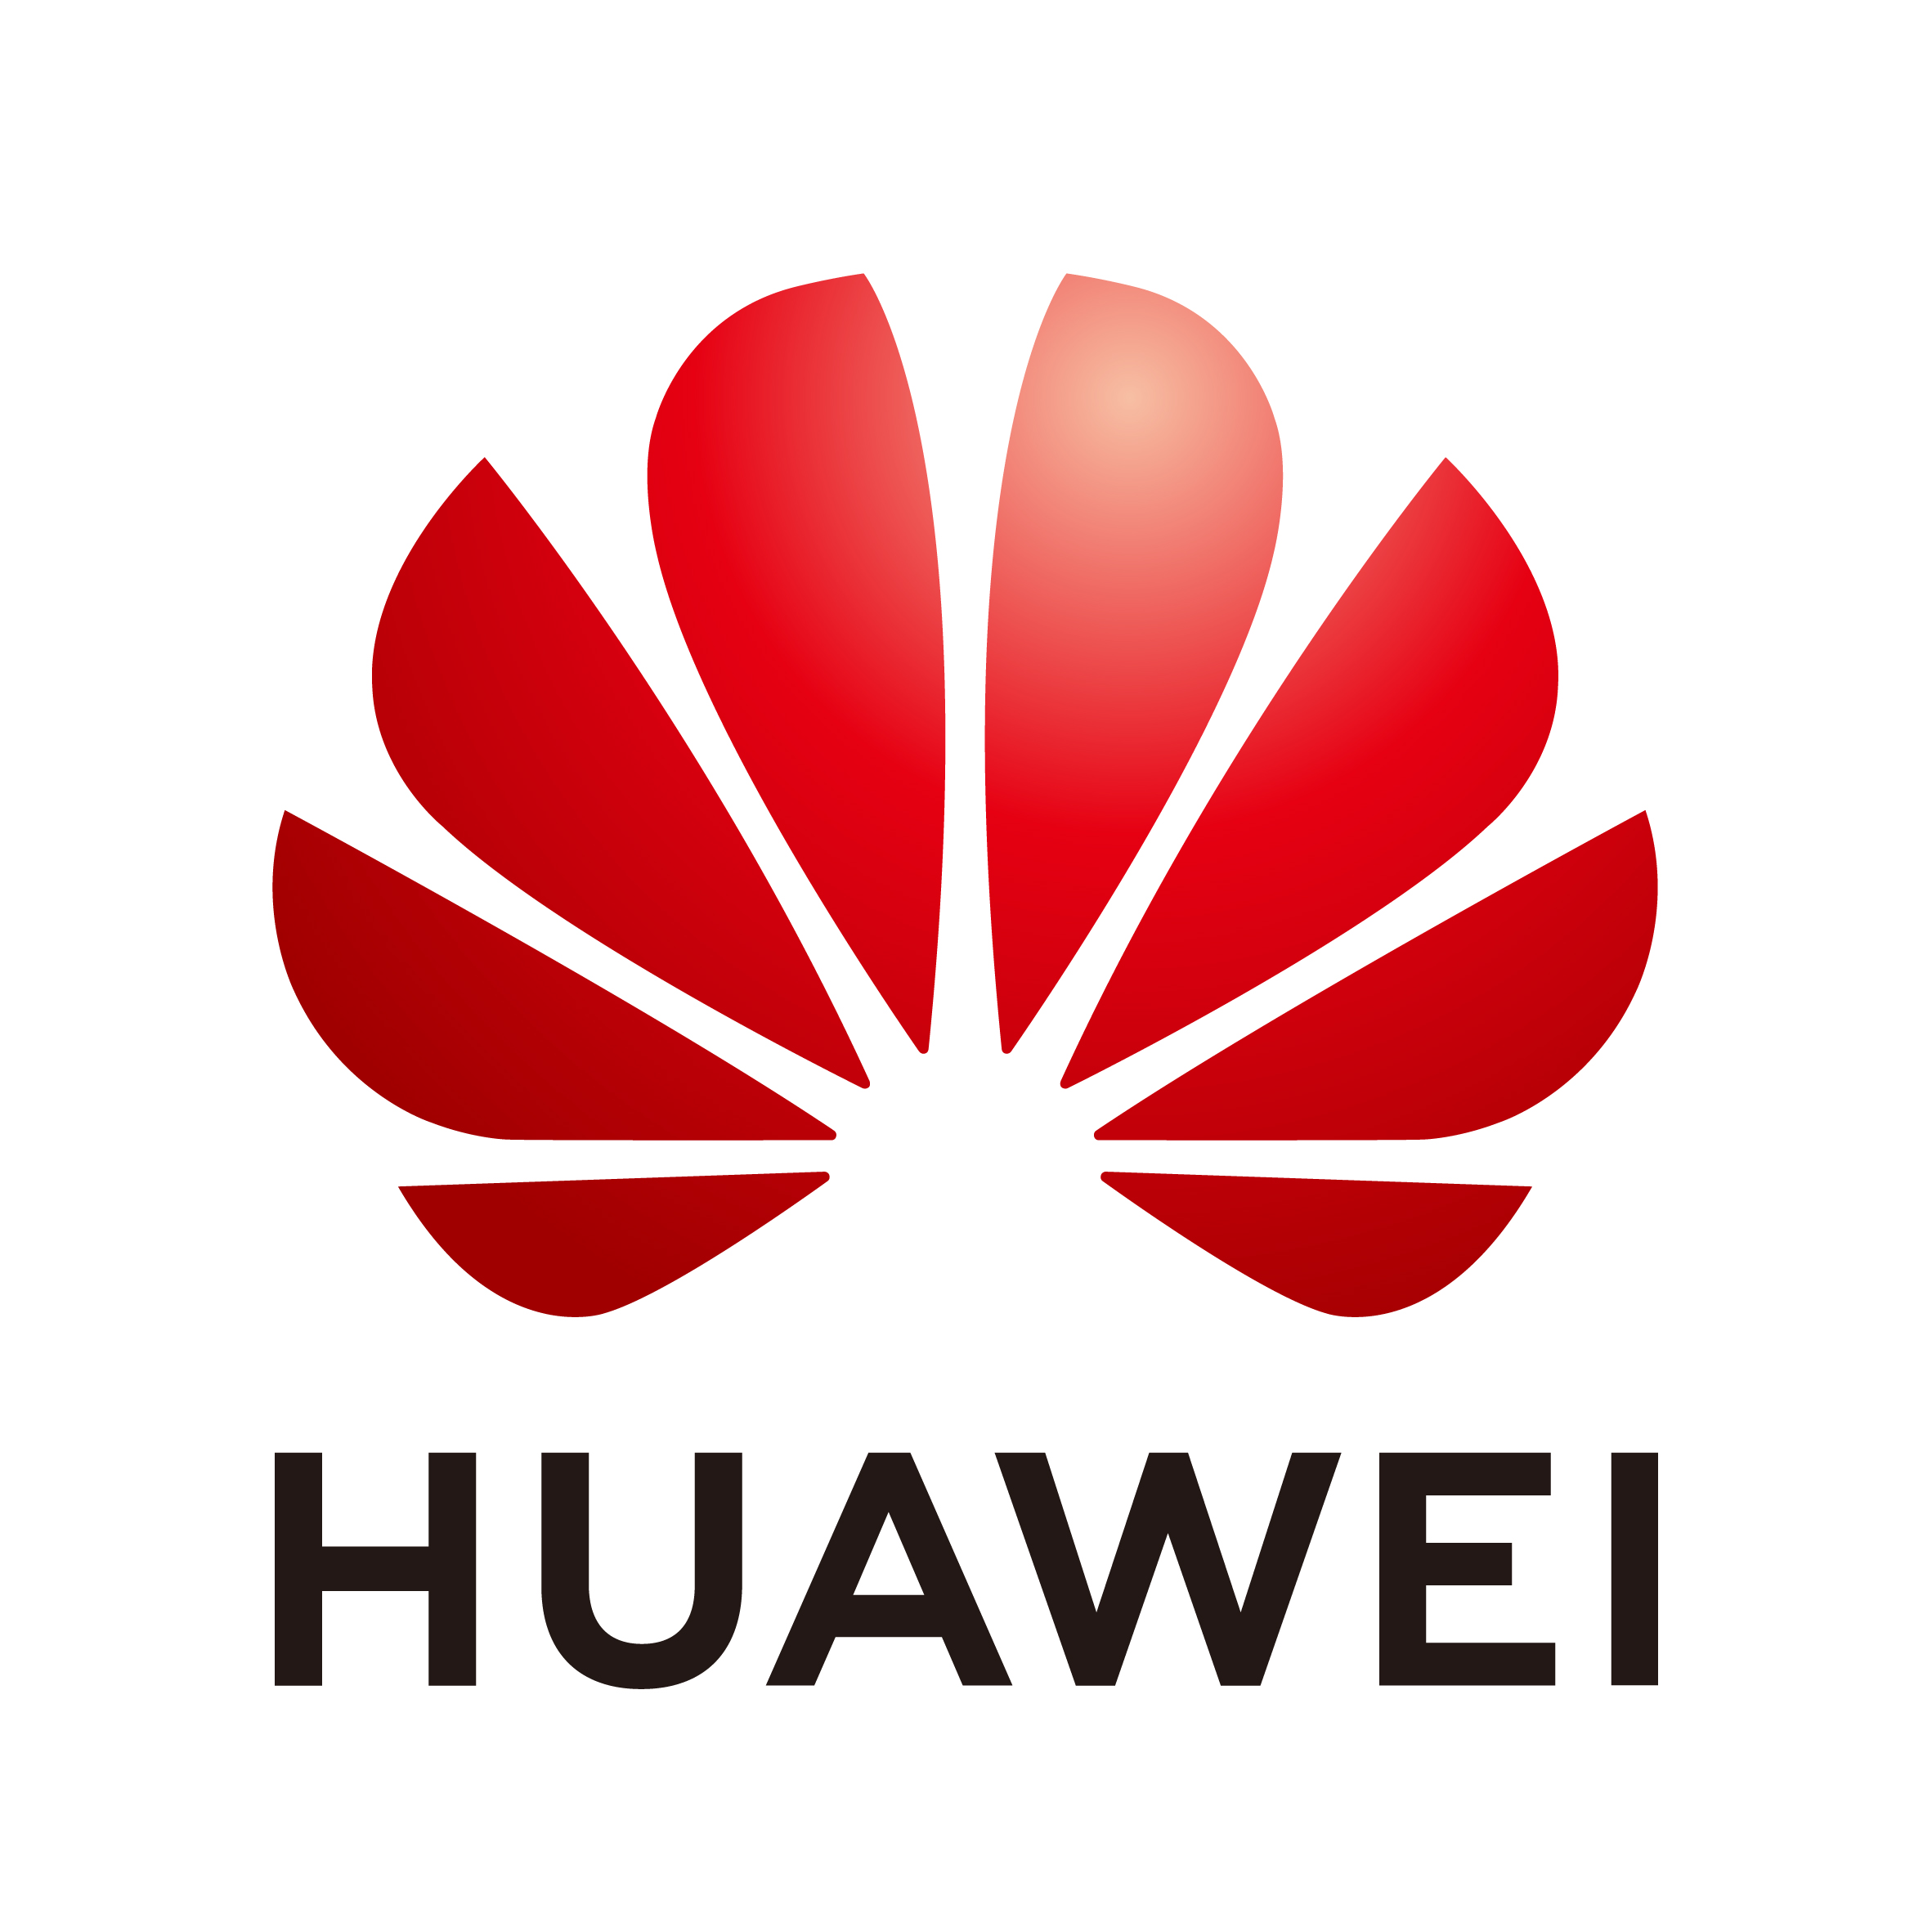 Huawei announced Q1 2021 business results with Net Profit margin up and business remains resilient